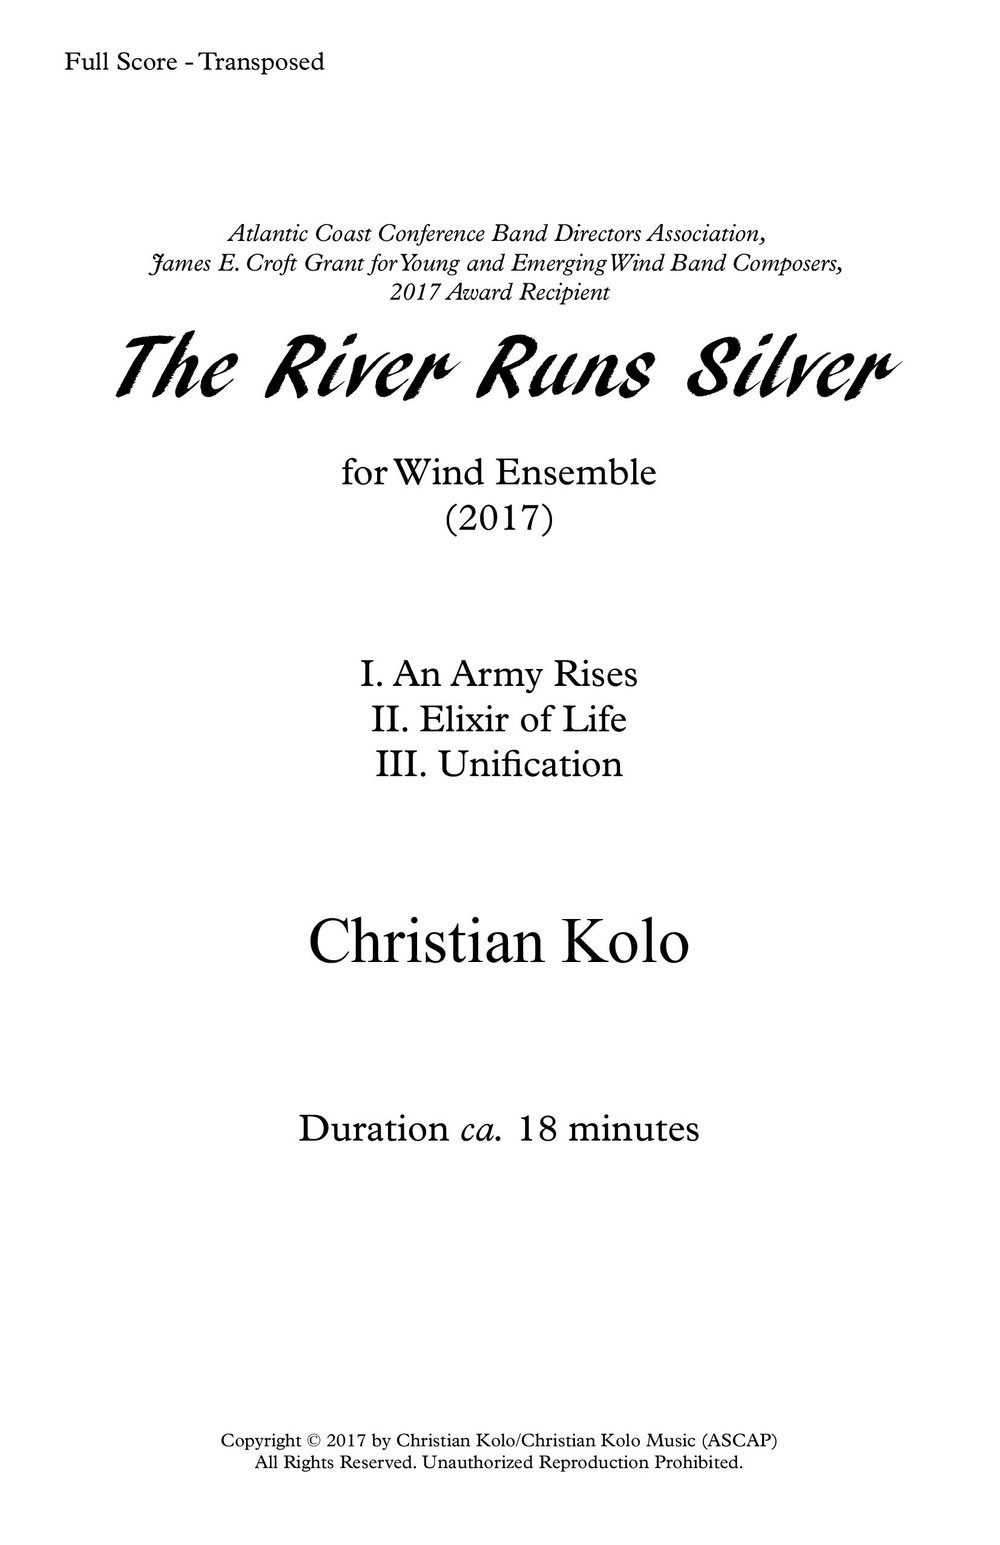 The River Runs Silver (Works Cover).jpg